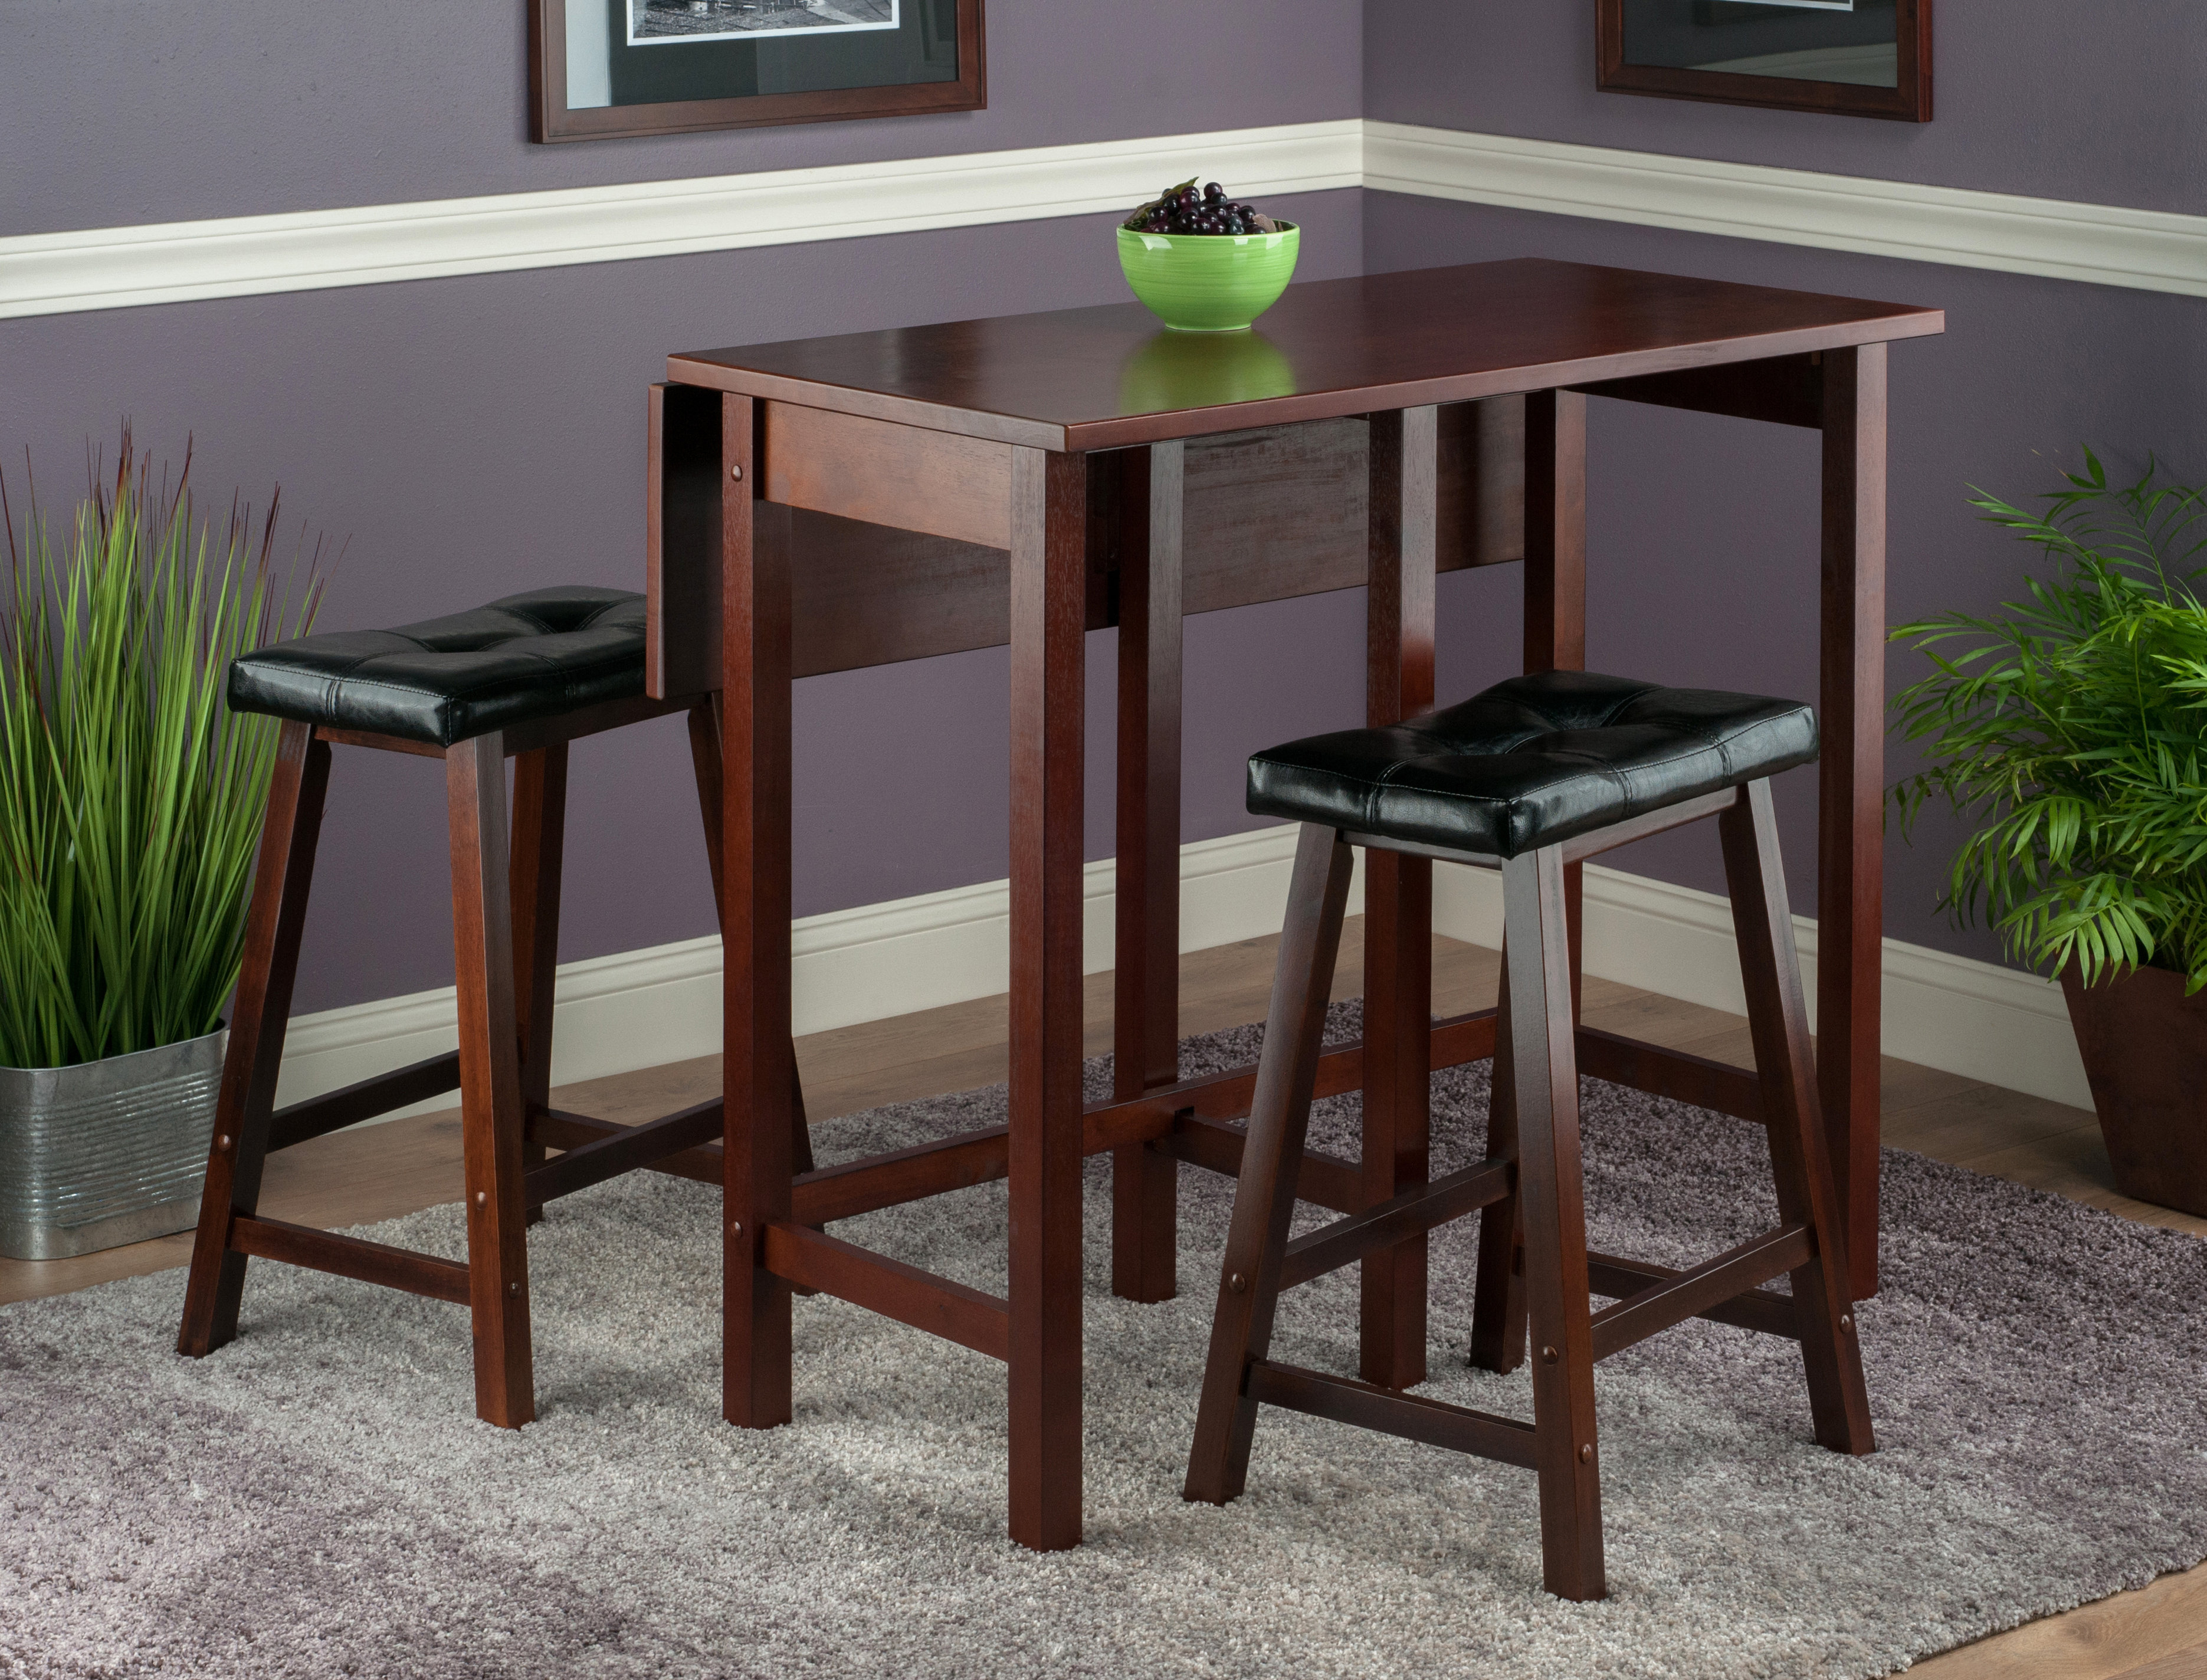 Bettencourt 3 Piece Counter Height Dining Set Throughout Most Up To Date Lonon 3 Piece Dining Sets (Image 1 of 20)